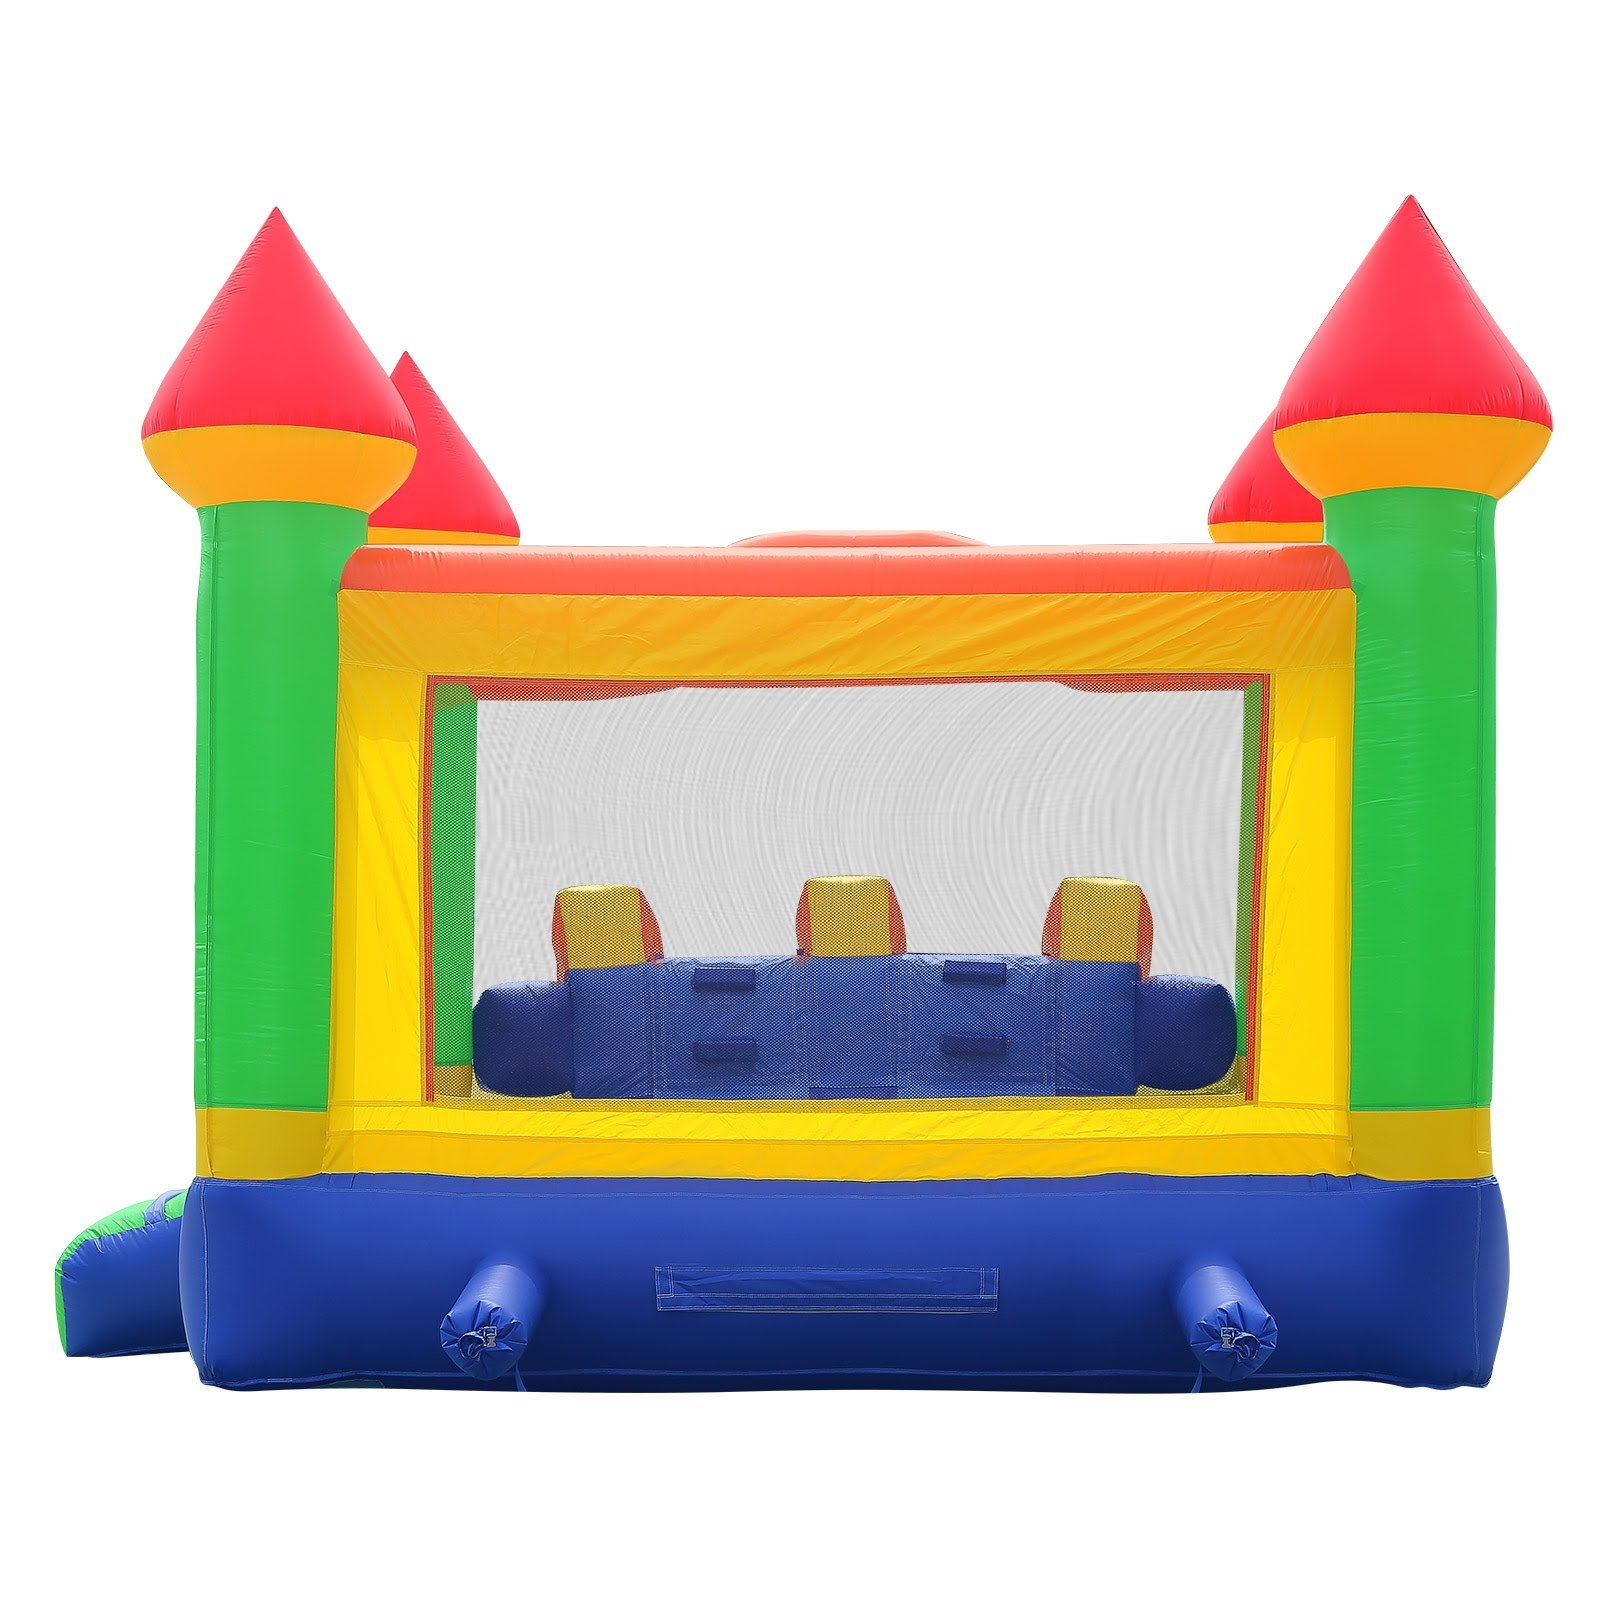 Commercial Grade Mega Slide Bounce House with Blower